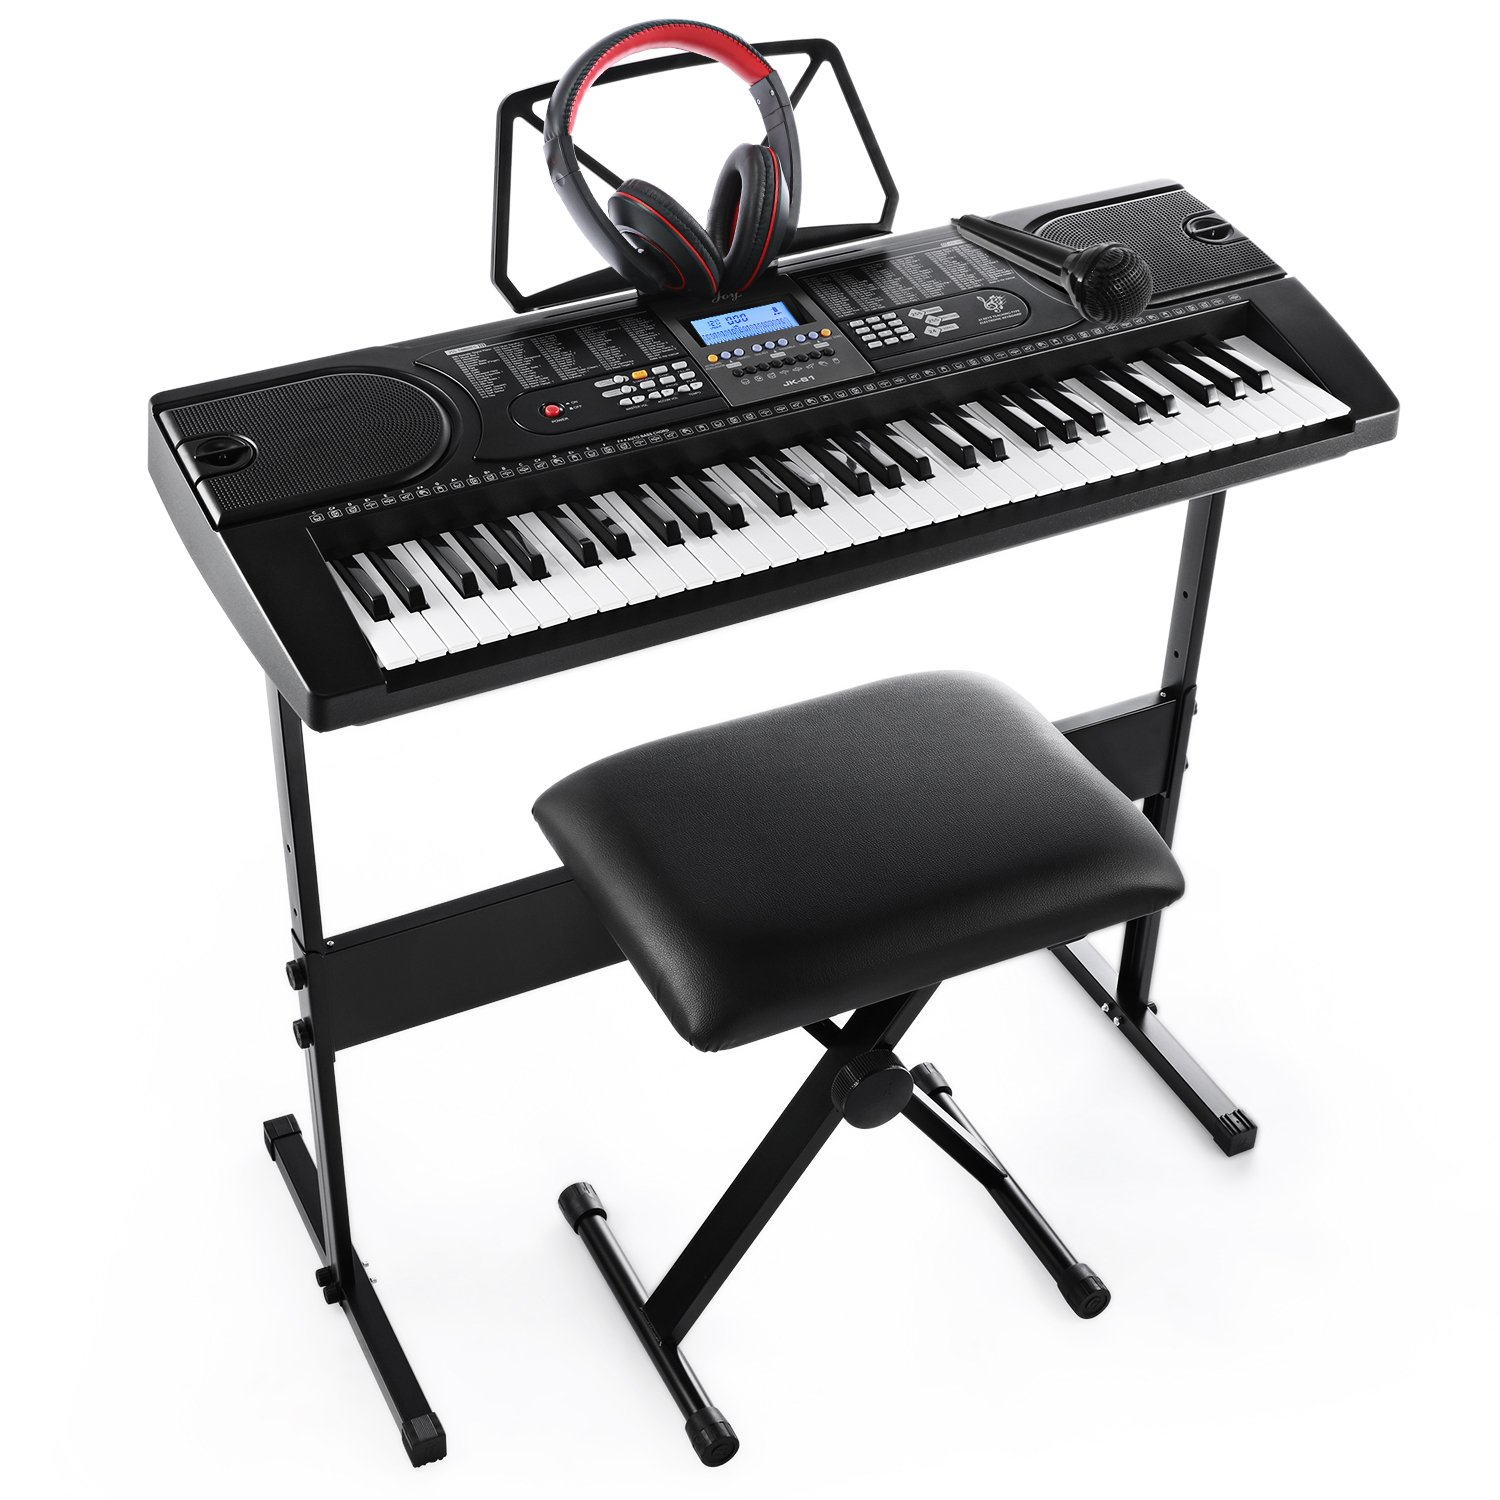 Joy 61-Key Electronic Keyboard Pack for Beginners, with Stand, Stool,Headphones and Power Supply (JK-61-KIT) by Joy